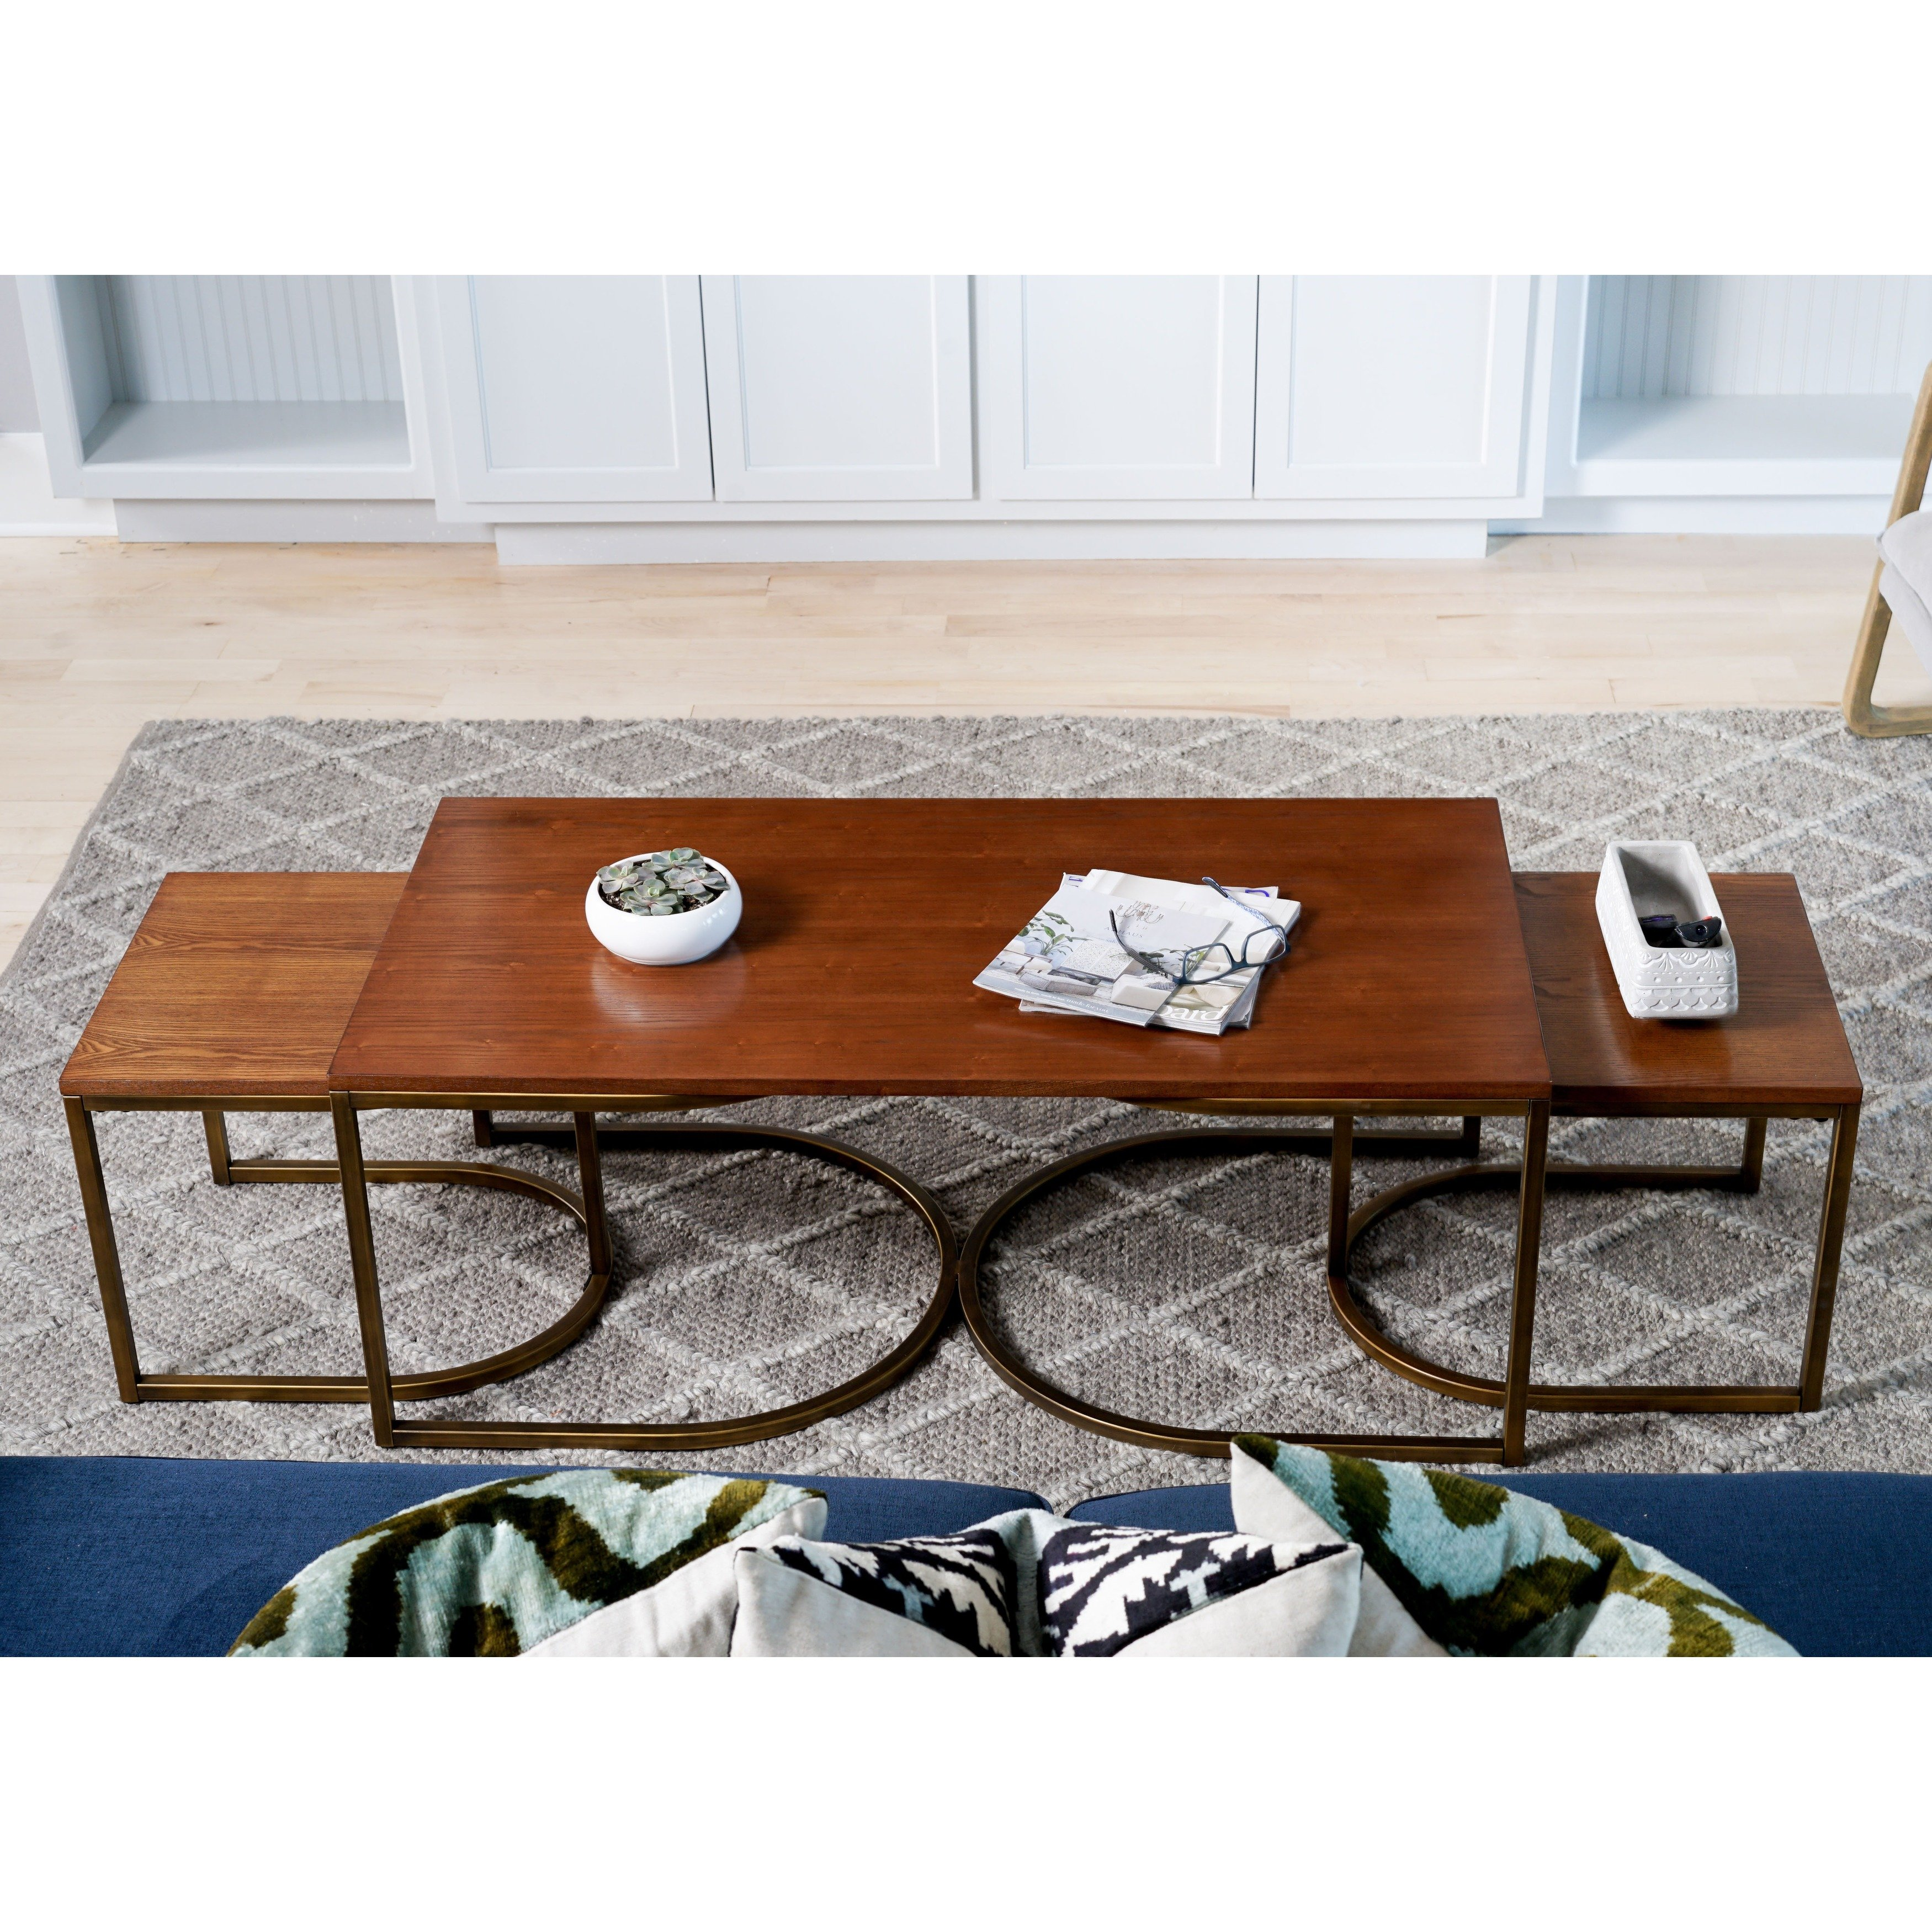 lincoln deco walnut nesting coffee tables haven home hives honey spring umbrella accent table free shipping today small pub metal set wood and chrome side white drop leaf kitchen